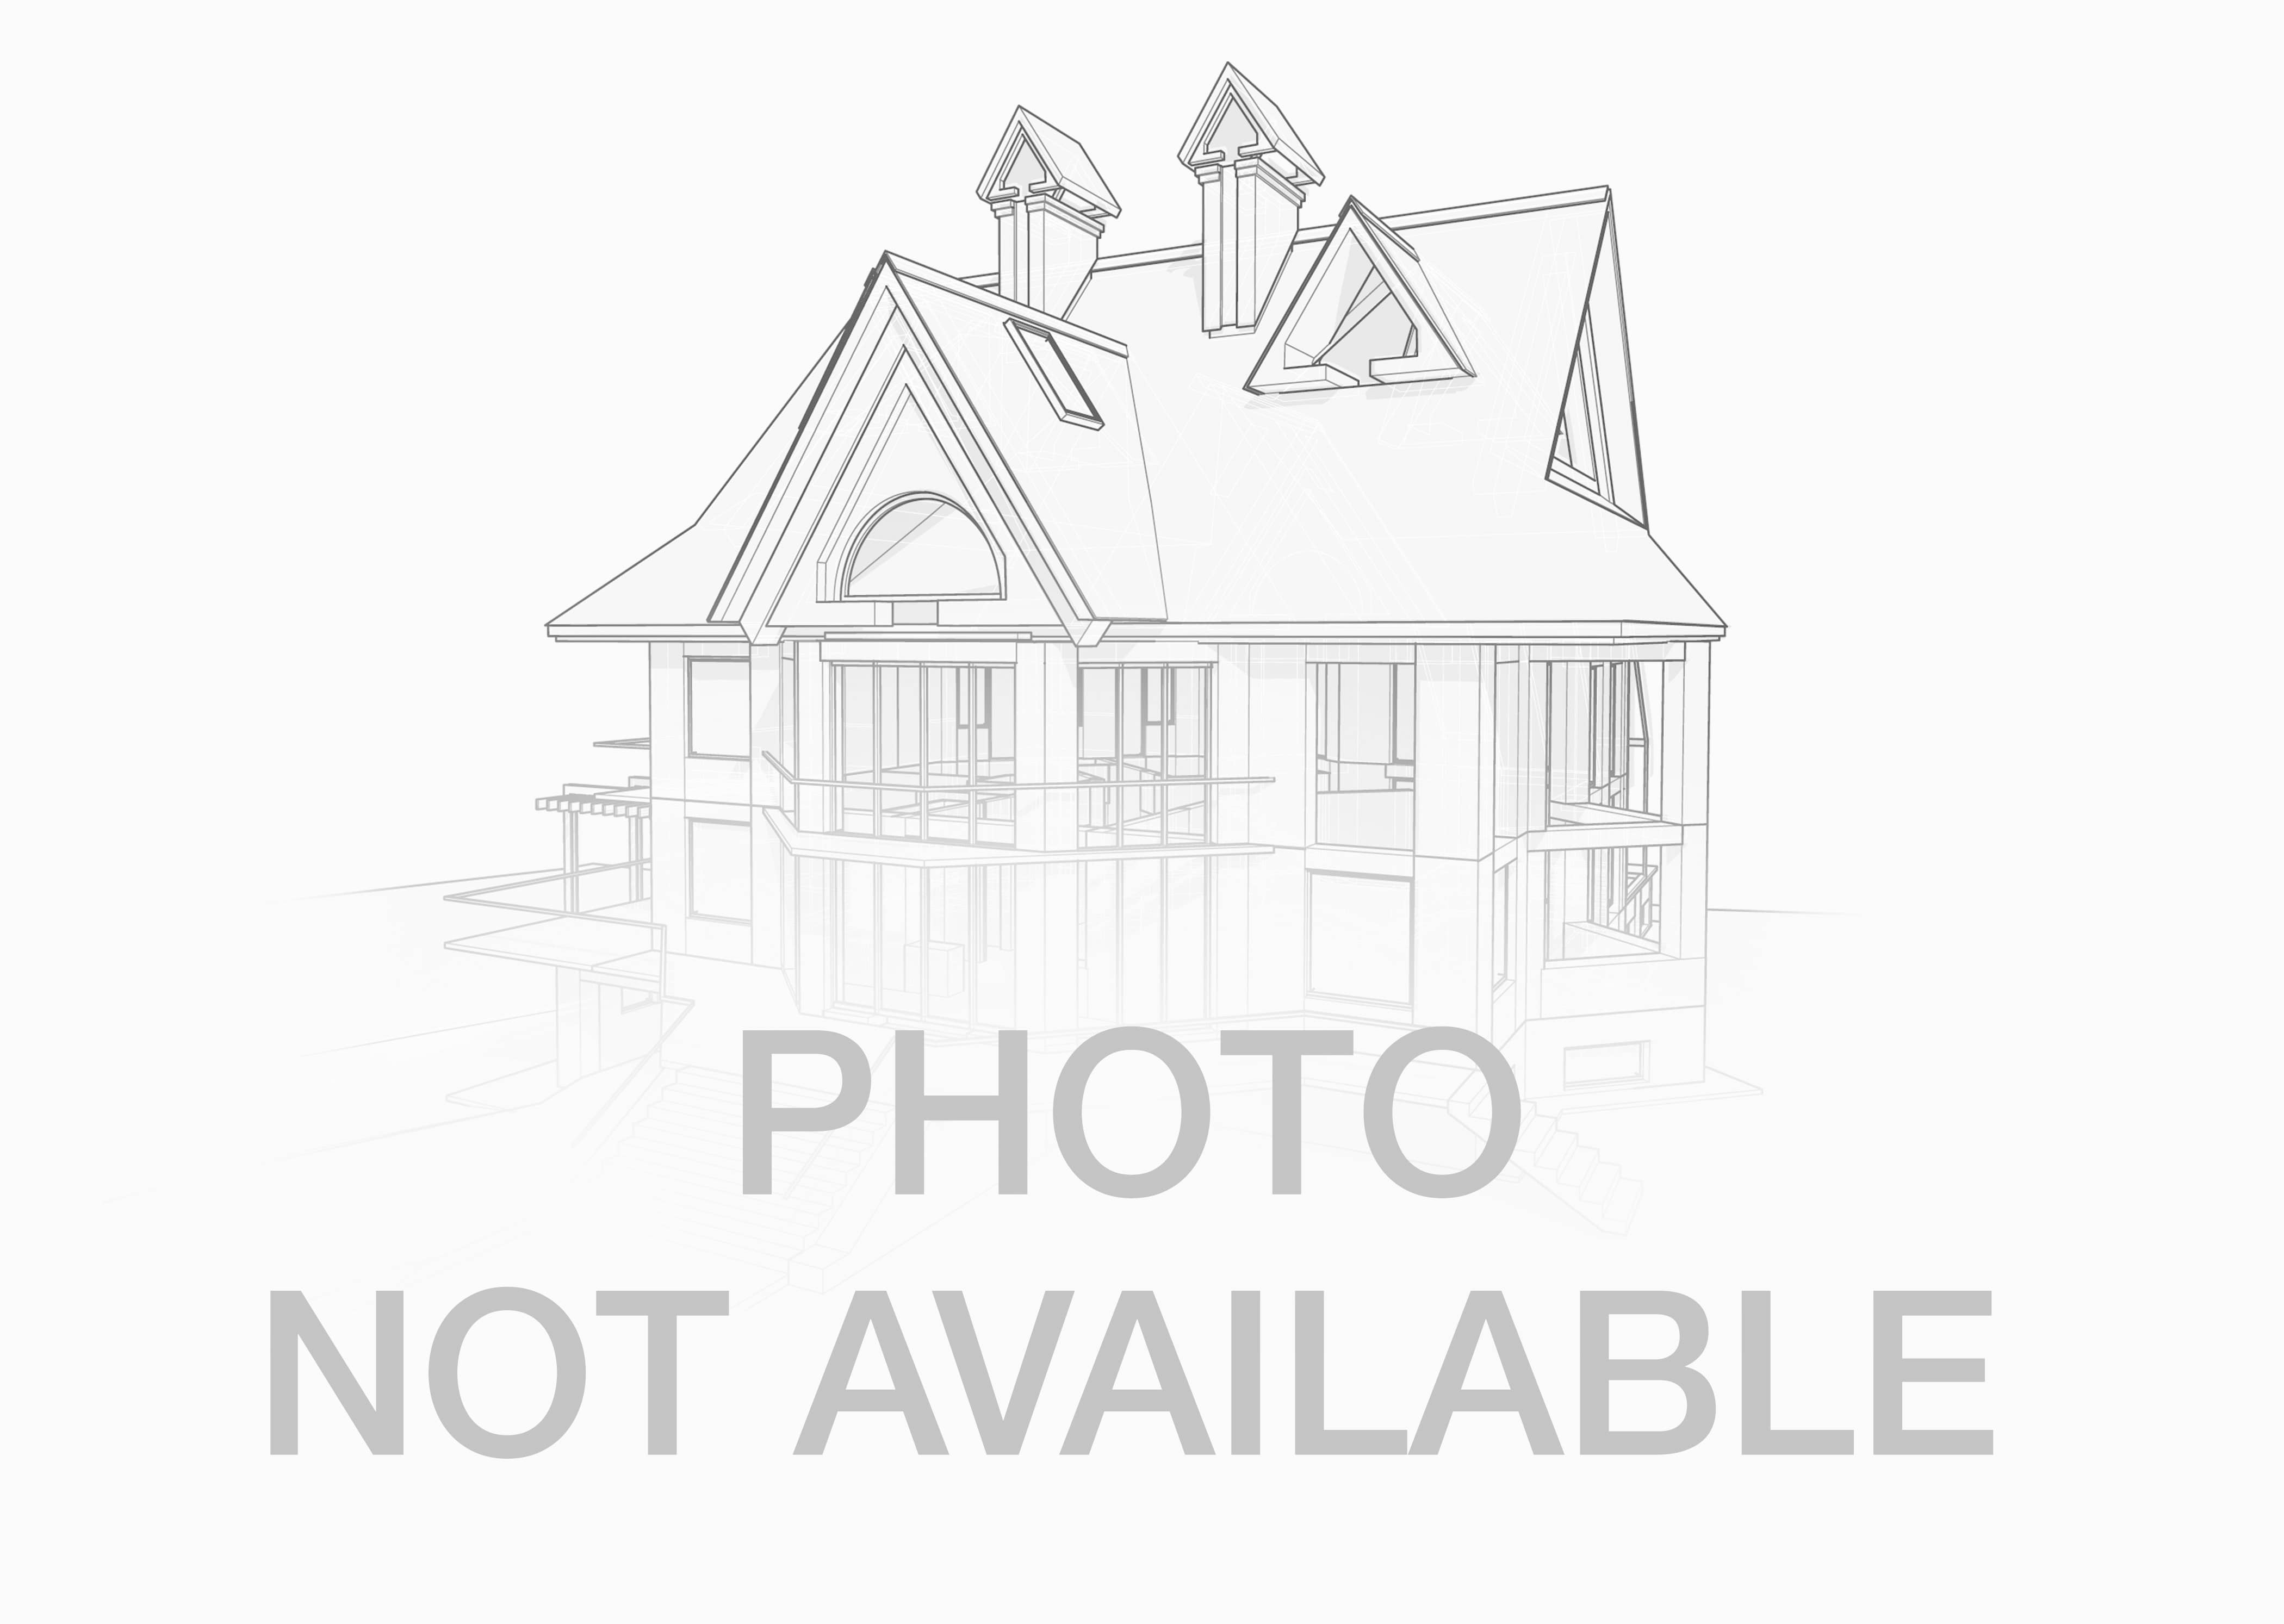 portsmouth nh me homes for sale and real estate rh spragueandcurtis com